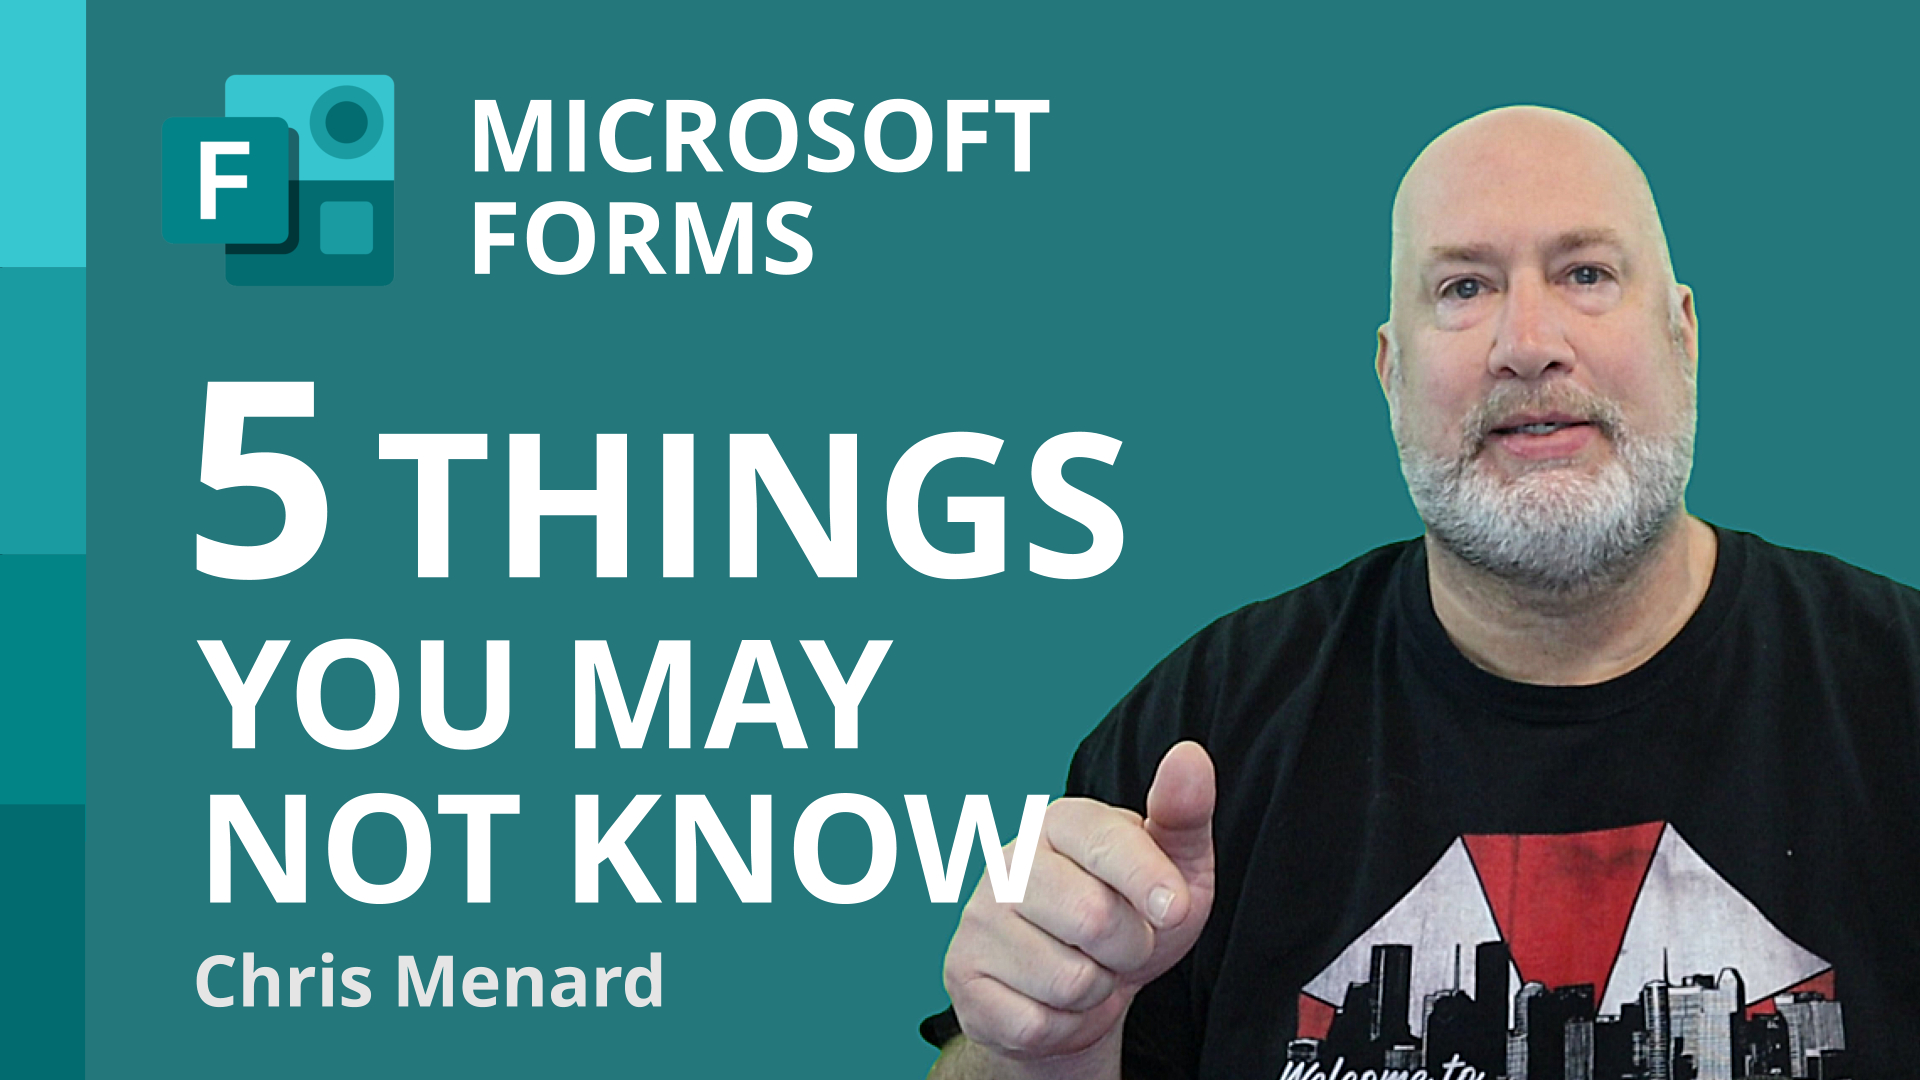 Microsoft Forms - 5 things you may not know you can do in Forms